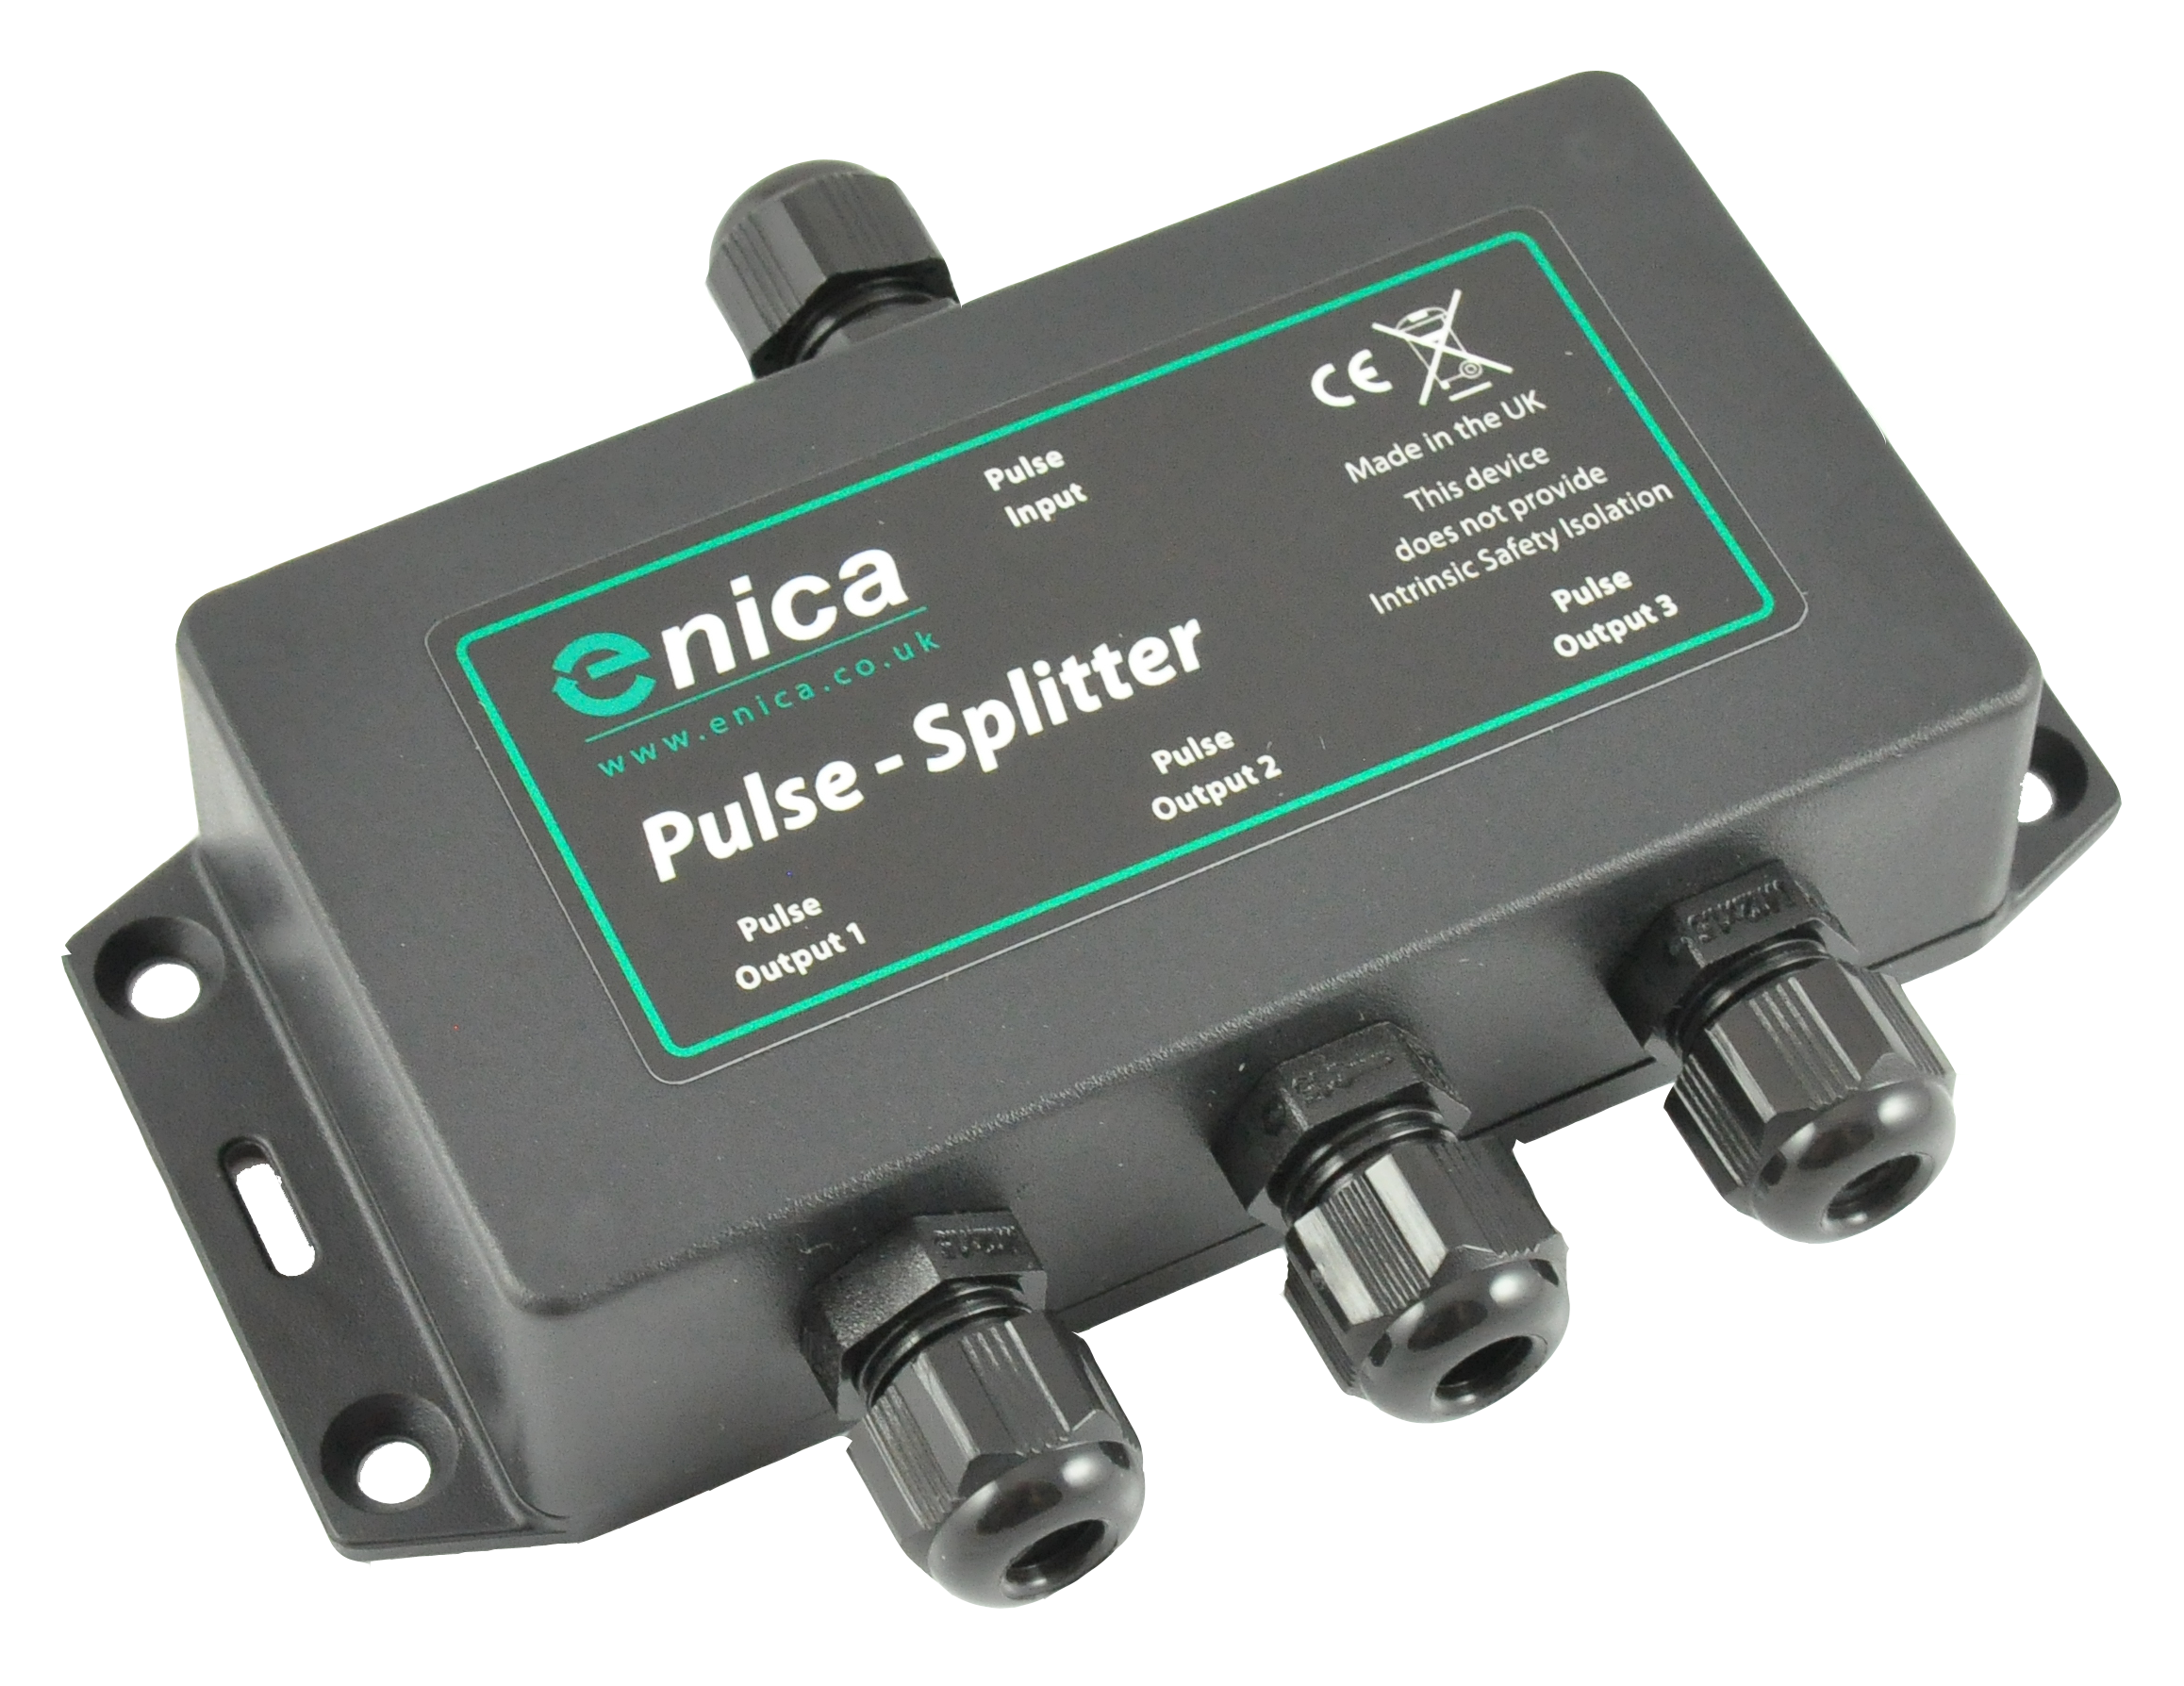 Passive pulse splitters - Enica's range of pulse splitters allow the connection of up to 3 different pulse data loggers to a single pulse meter. Useful when multiple AMR loggers are present on the same meter.